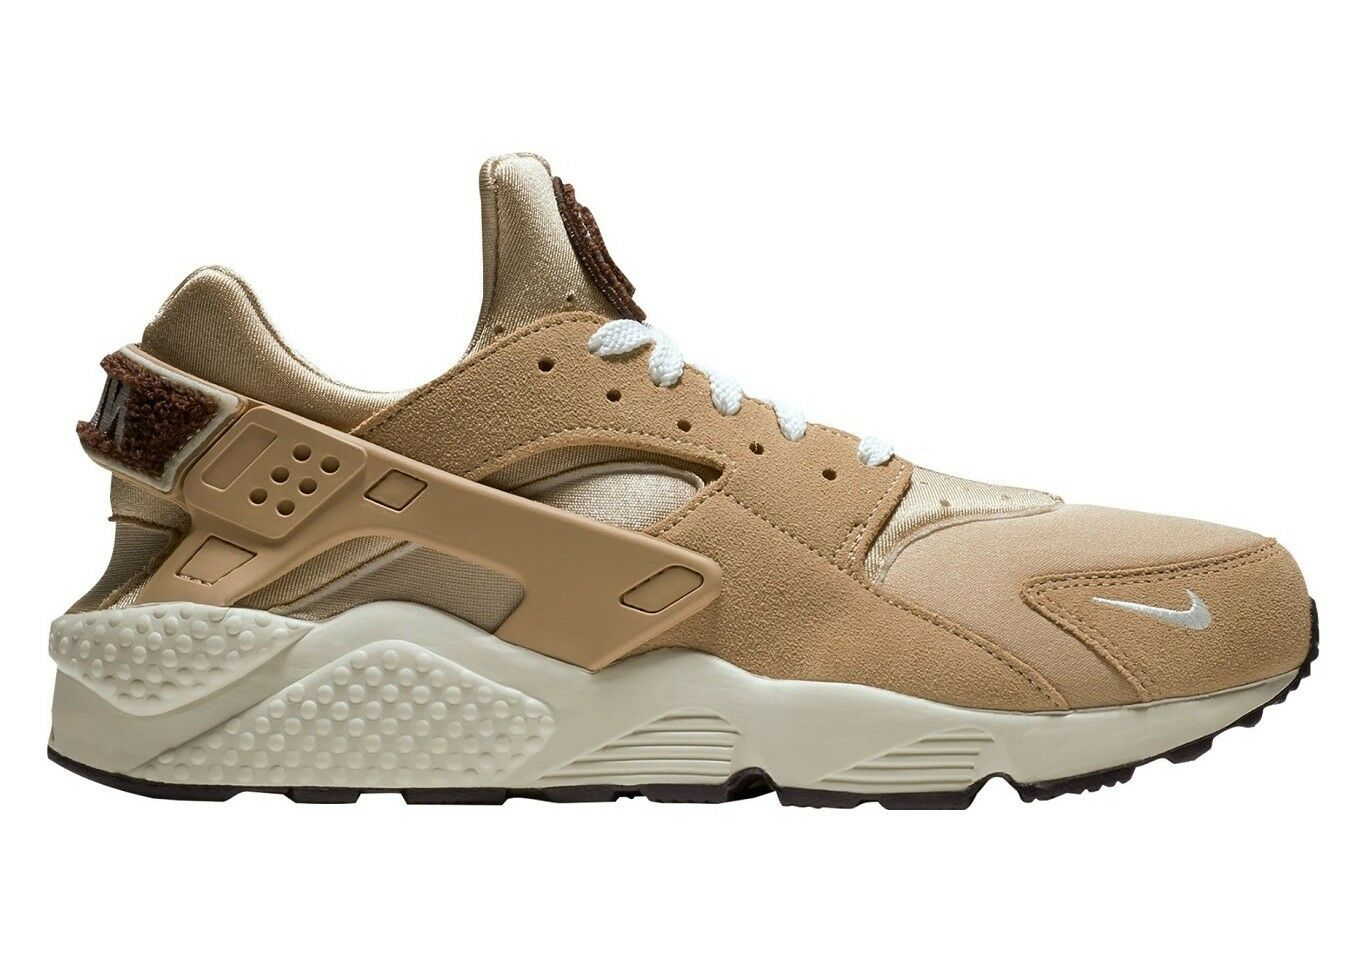 Nike Air Huarache Run Premium Mens 704830-202 Desert Sail Running Shoes Size 8